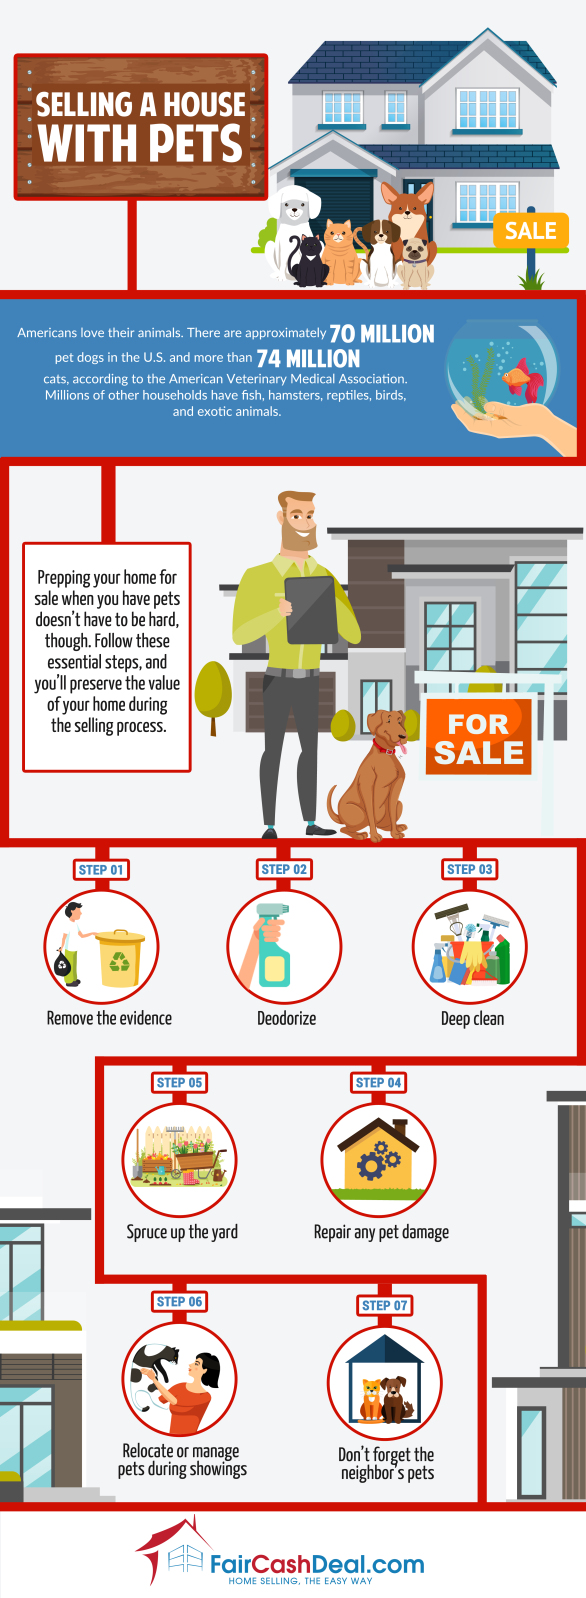 Selling A House with Pets